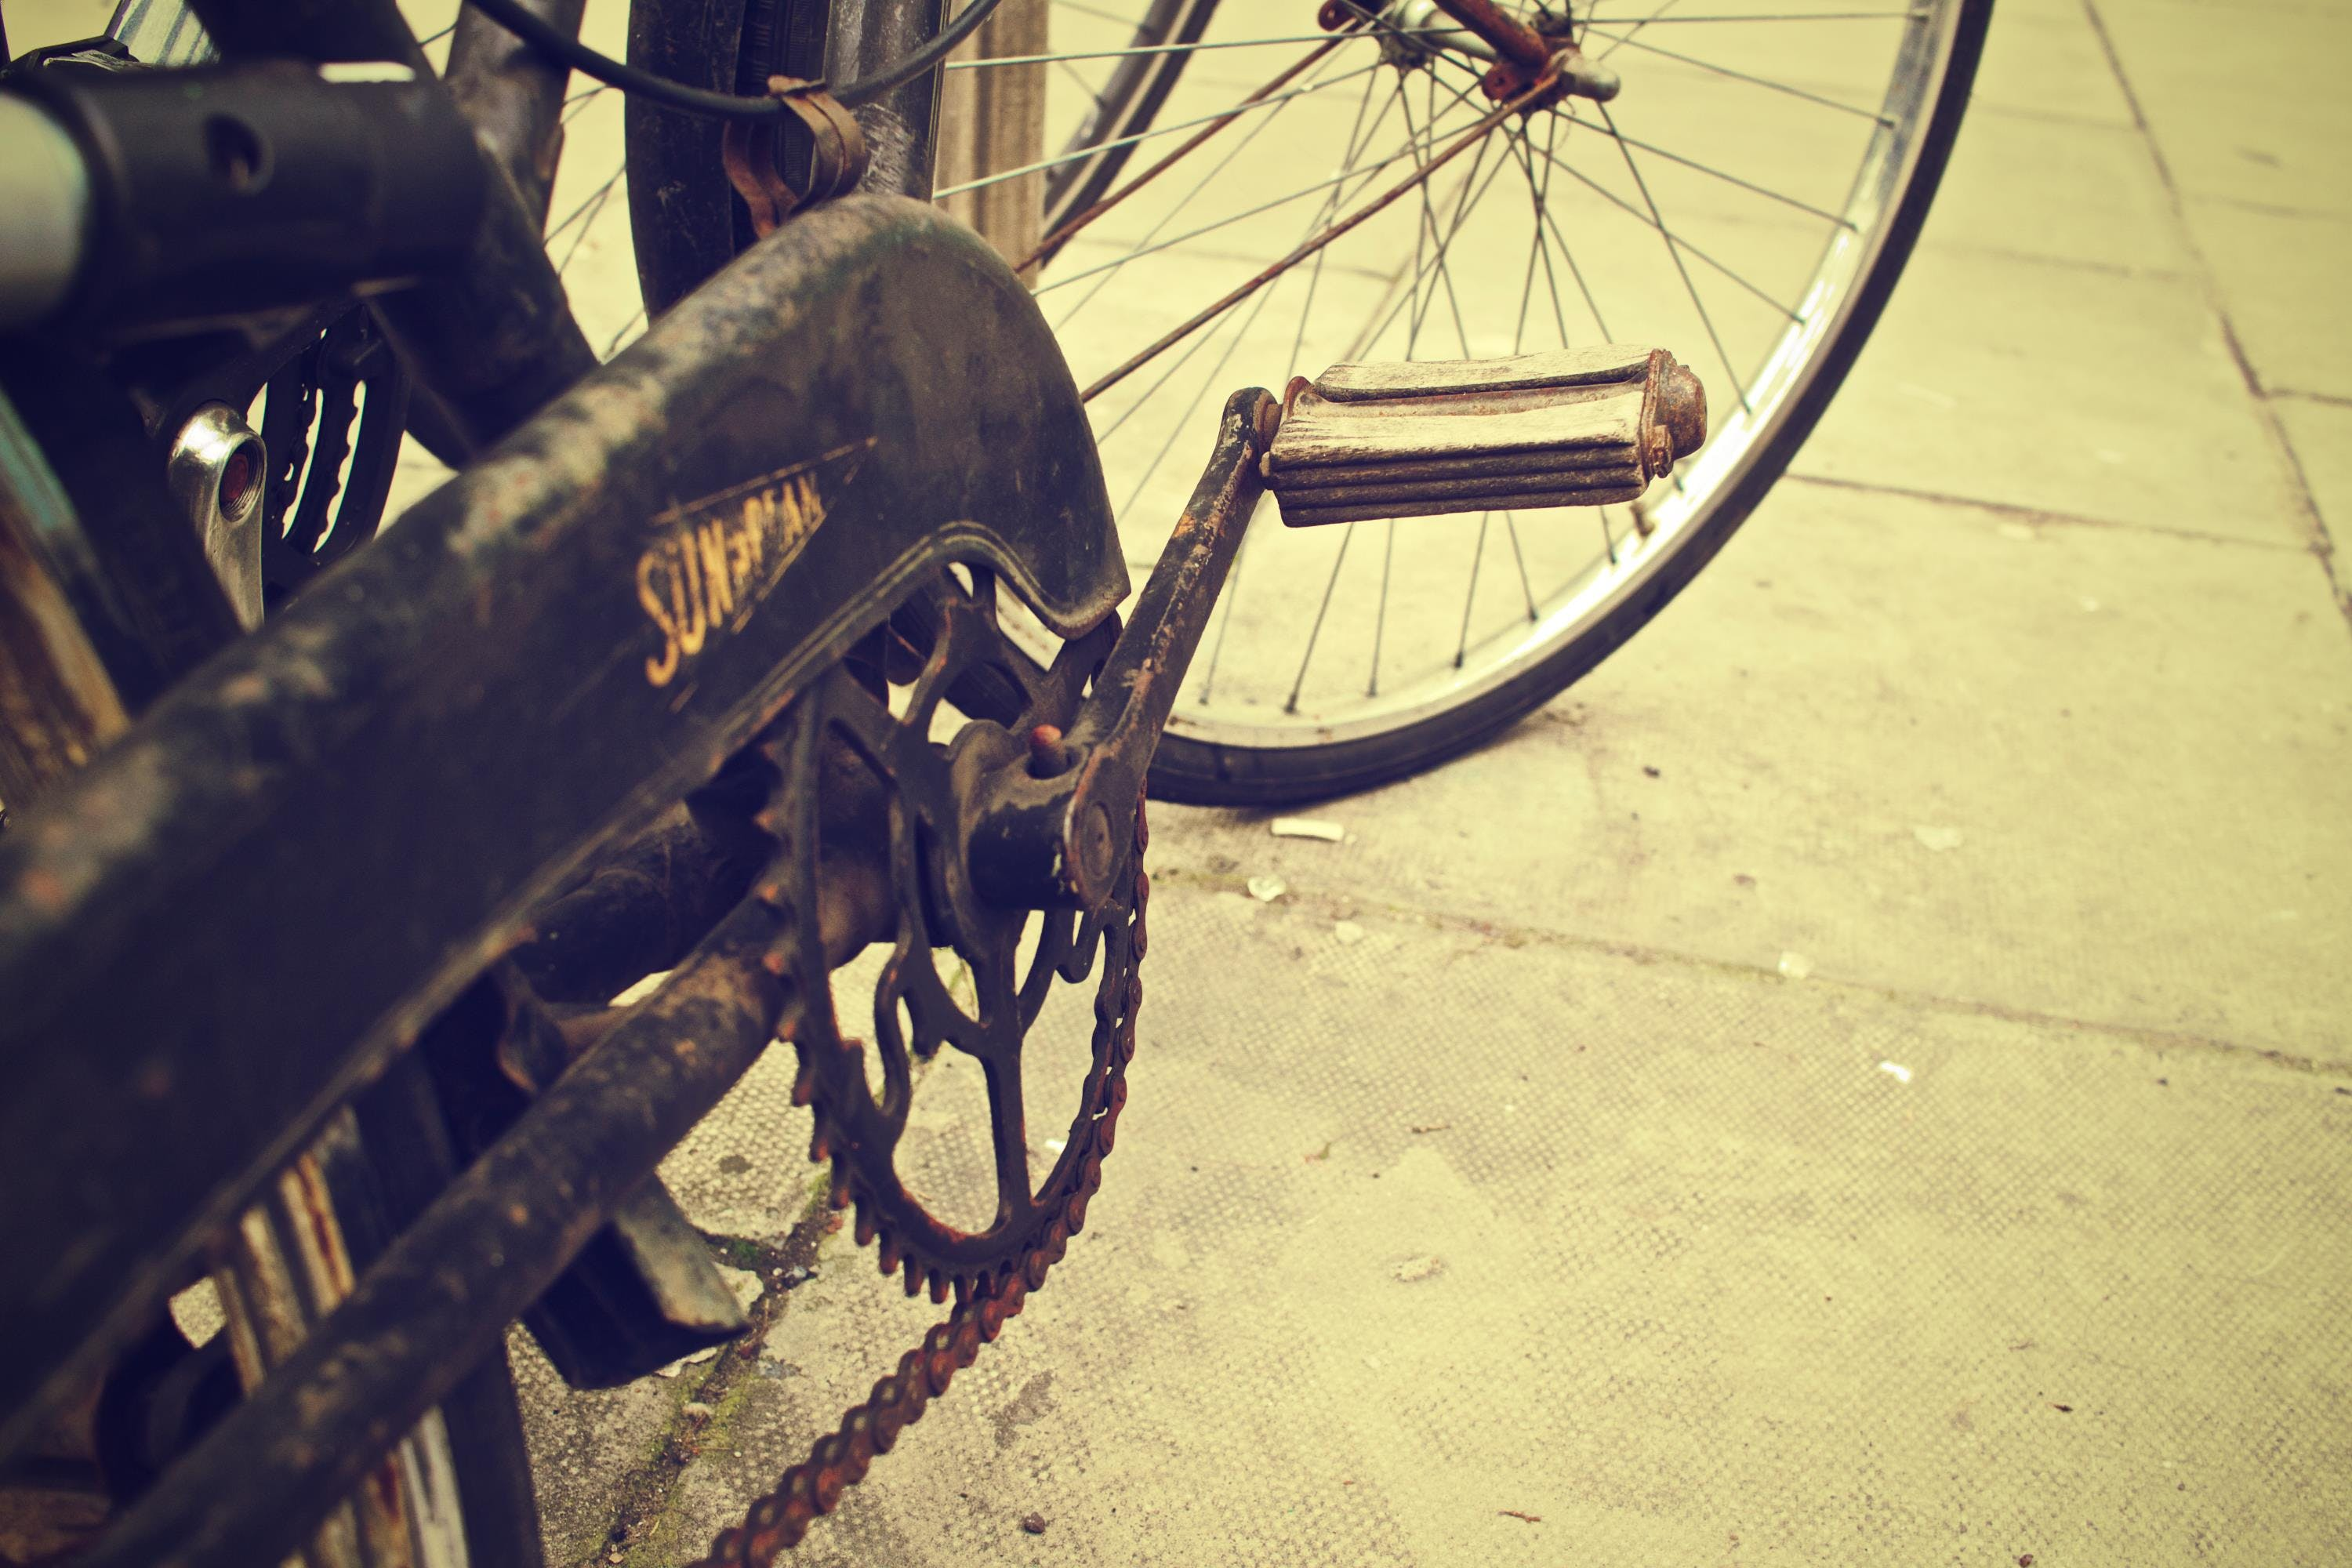 bicycle, bike, broken